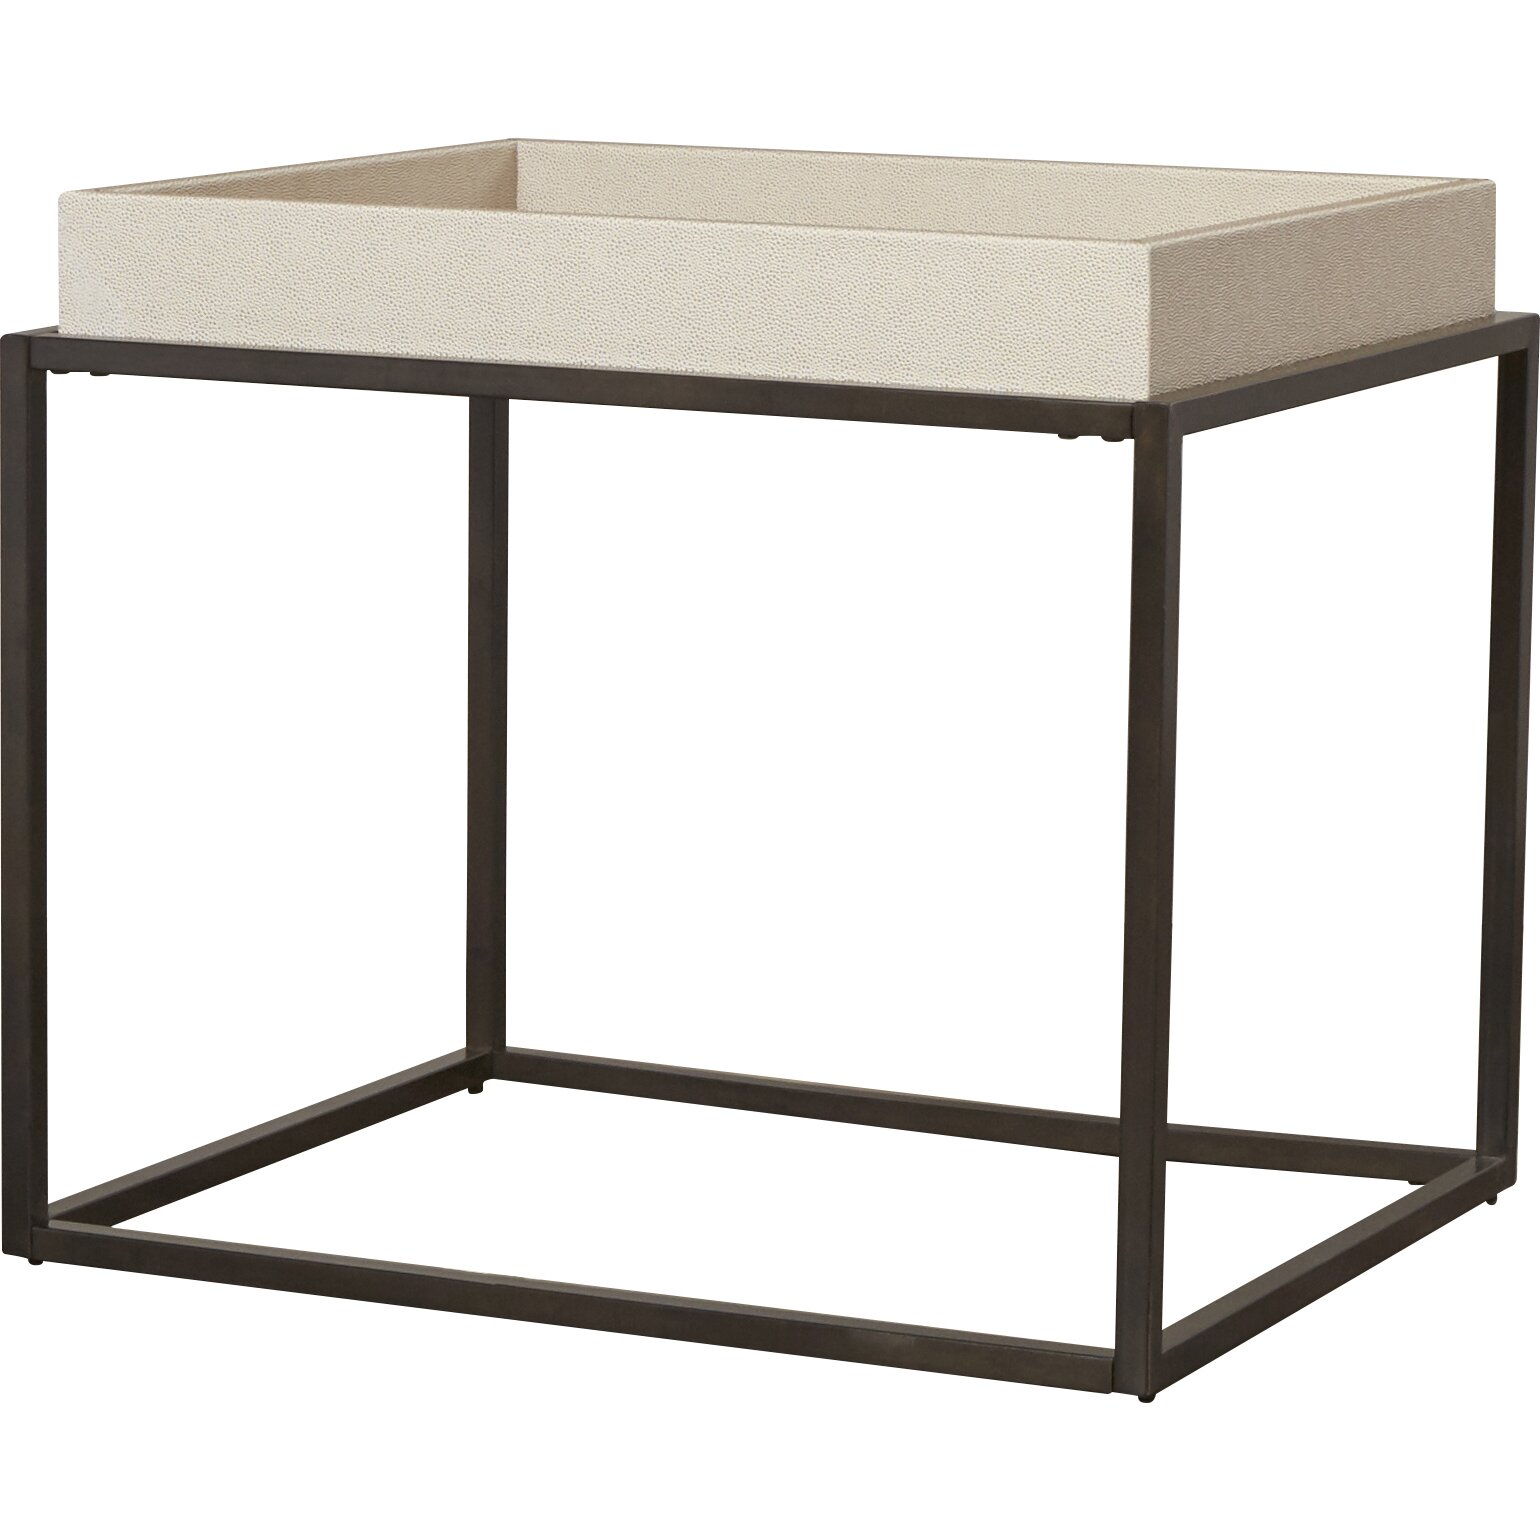 Latitude Run Tray Top End Table & Reviews  Wayfair. Seashell Drawer Knobs. Wooden Stand Up Desks. Portable Work Desk. Memory Foam Desk Chair. Easter Table Decor. Diy Lap Desk. Indoor Bistro Table. Oval Coffee Table